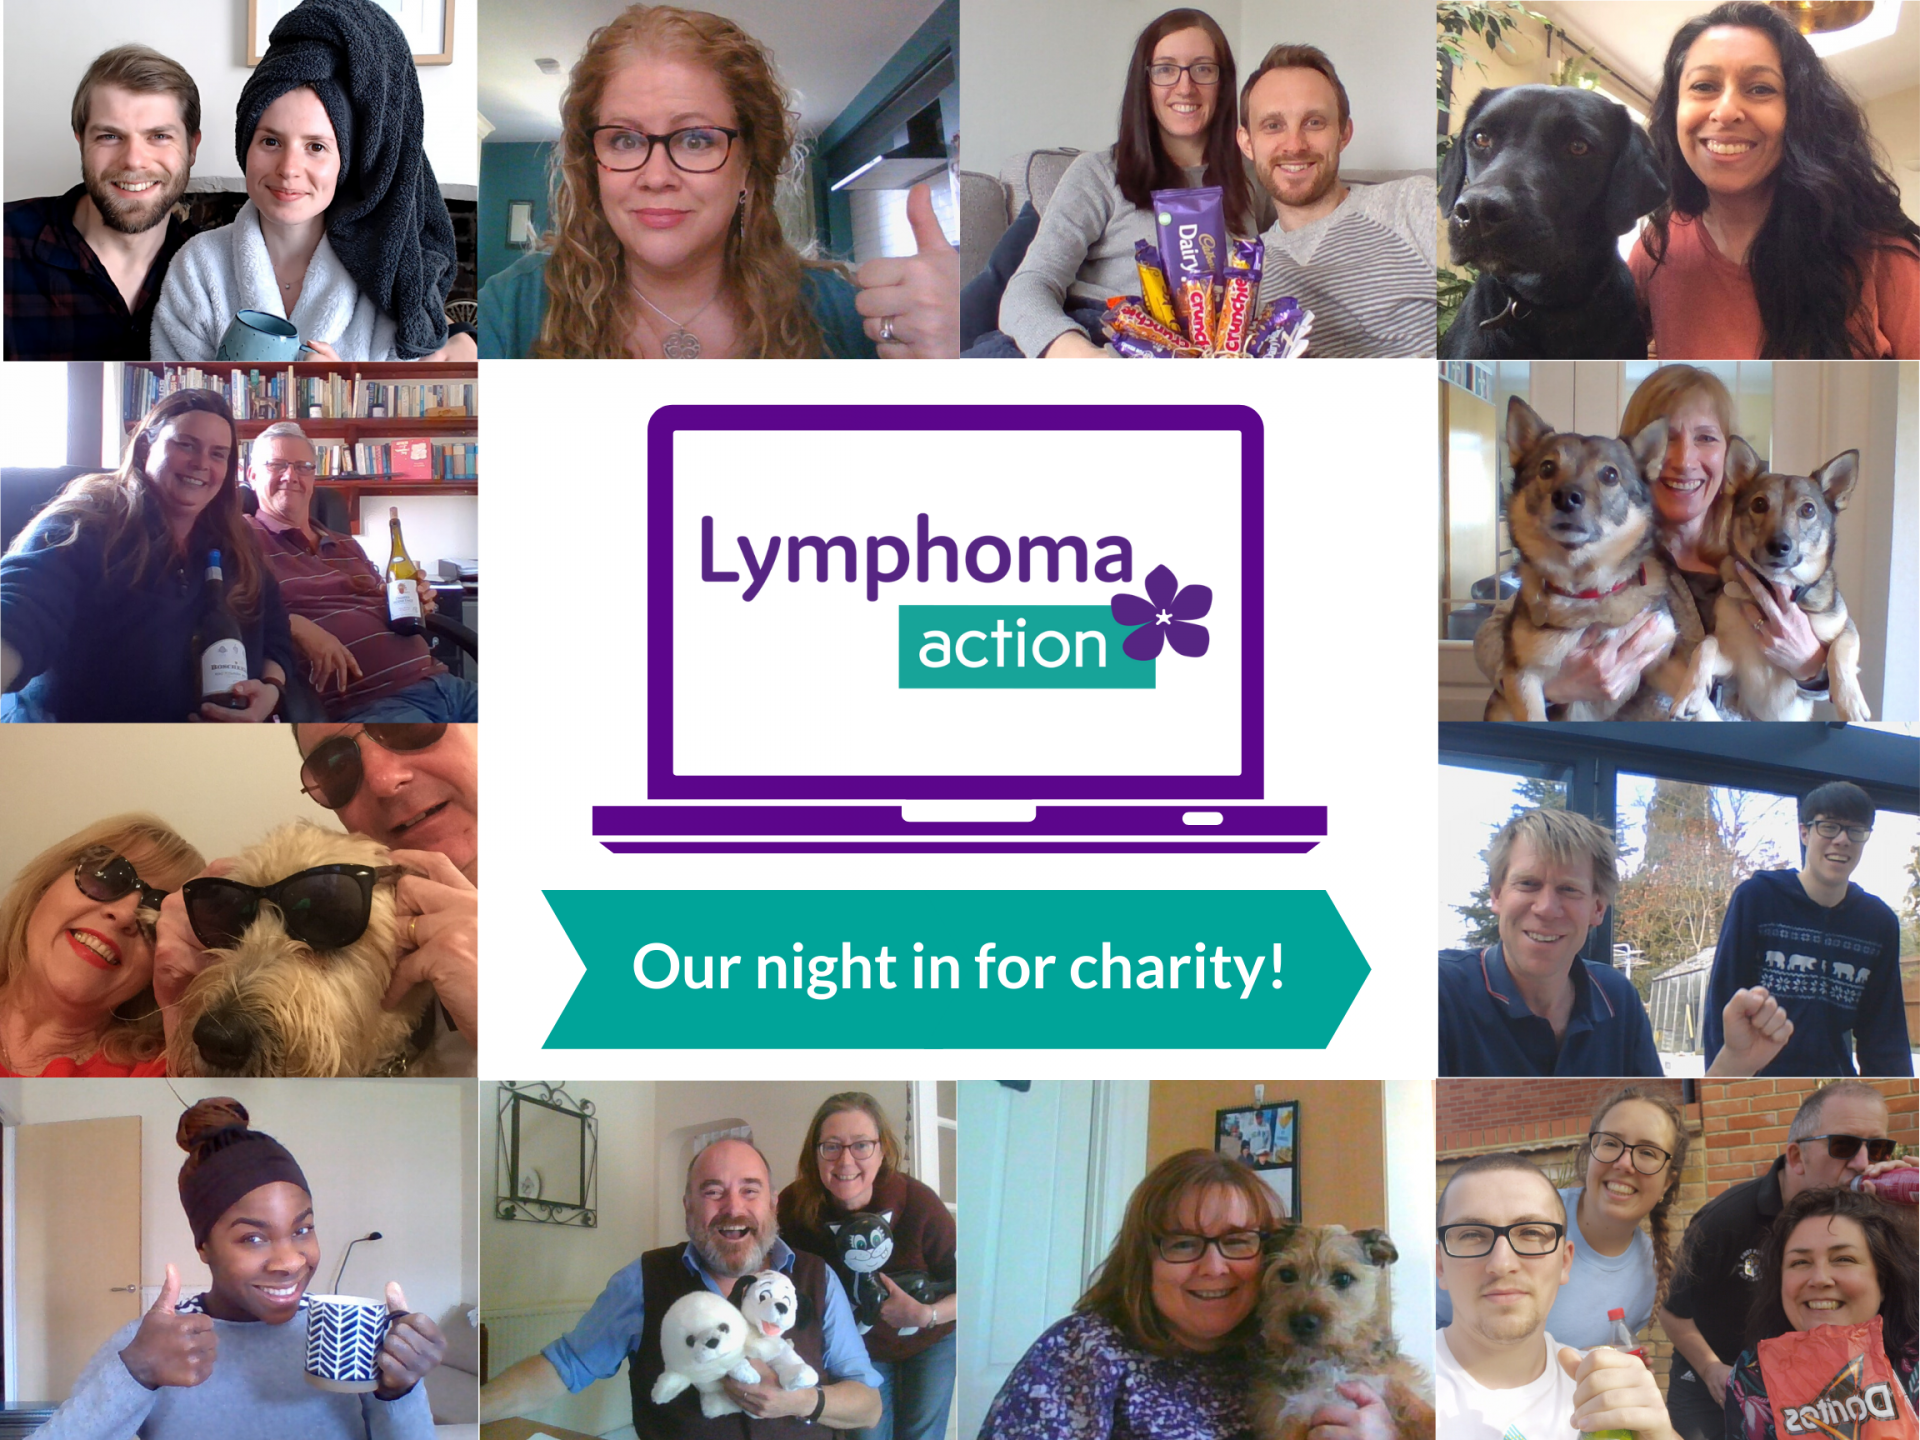 Image for Lymphoma Action's 'Our night in for charity' campaign